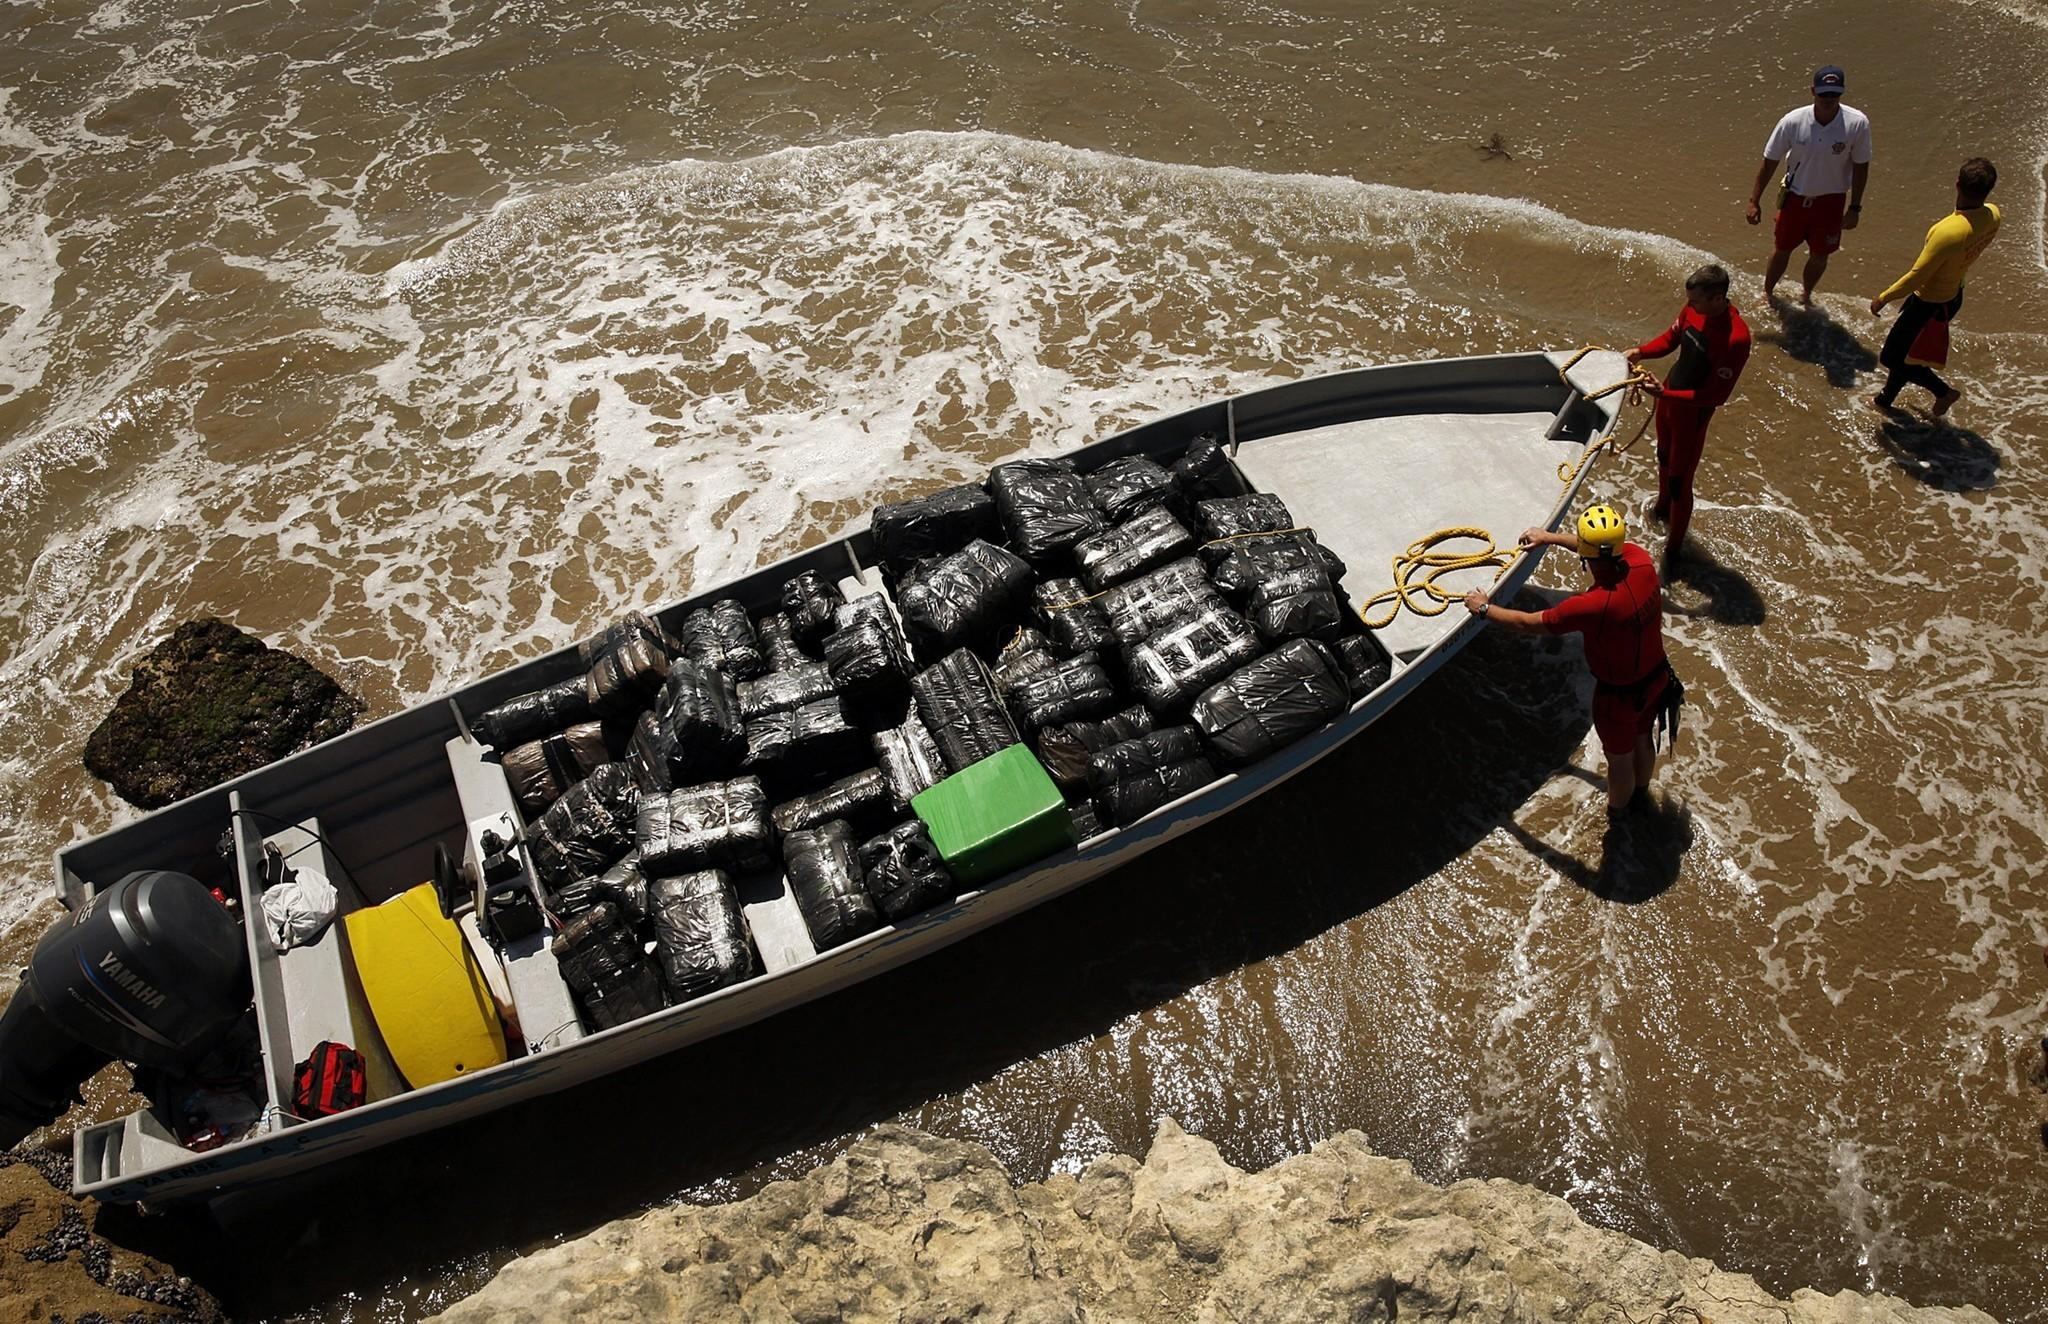 Firefighters and lifeguards inspect a beached panga-style boat that was loaded with marijuana.